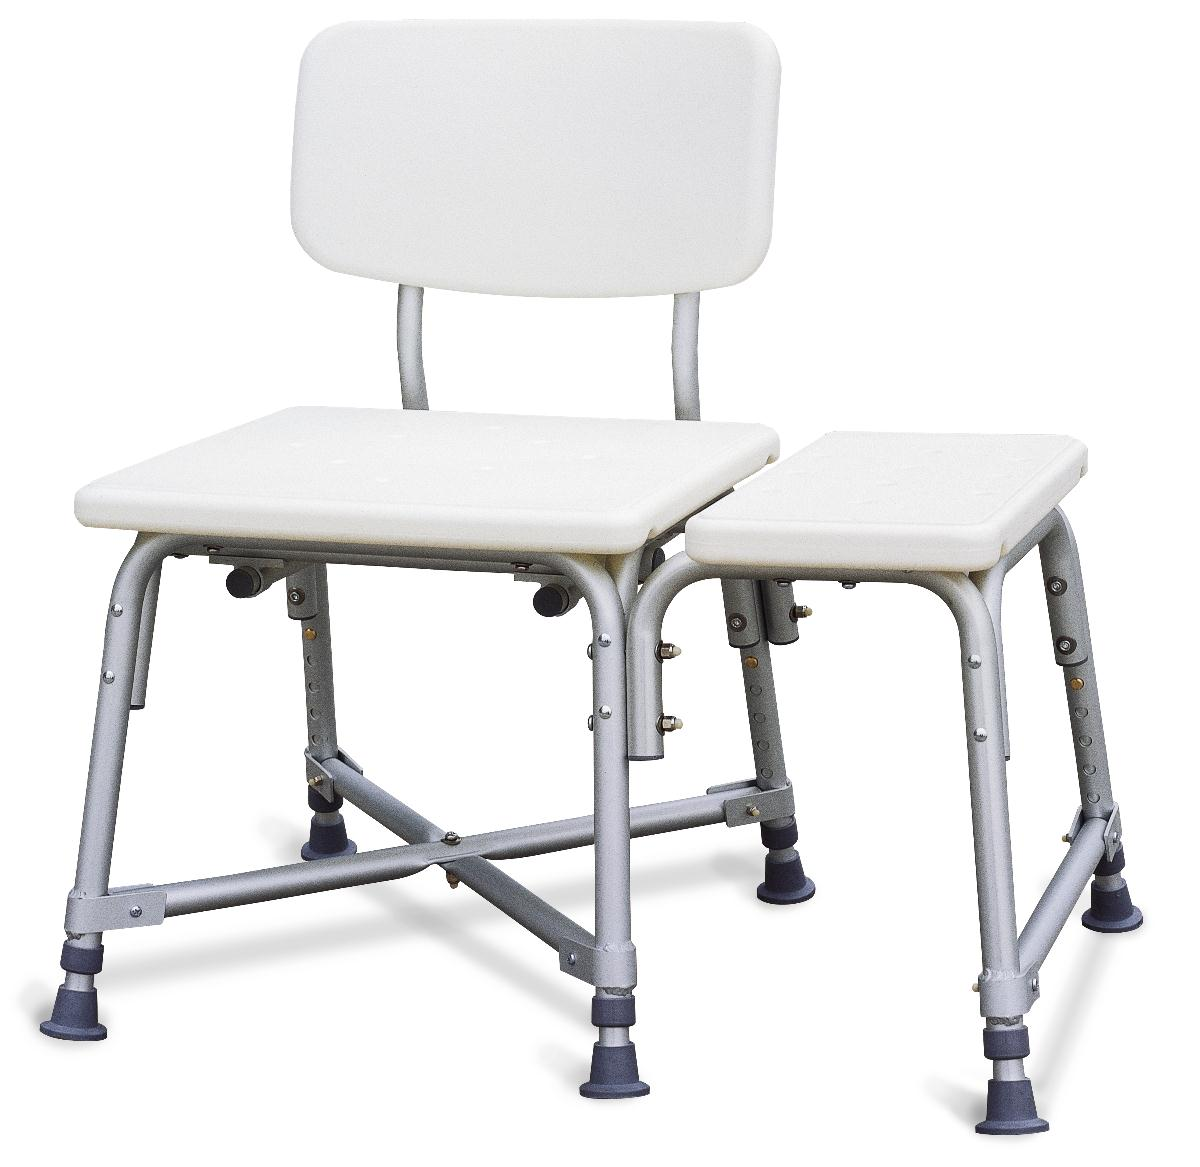 Non-Padded Bariatric Transfer Bench - Careway Wellness Center